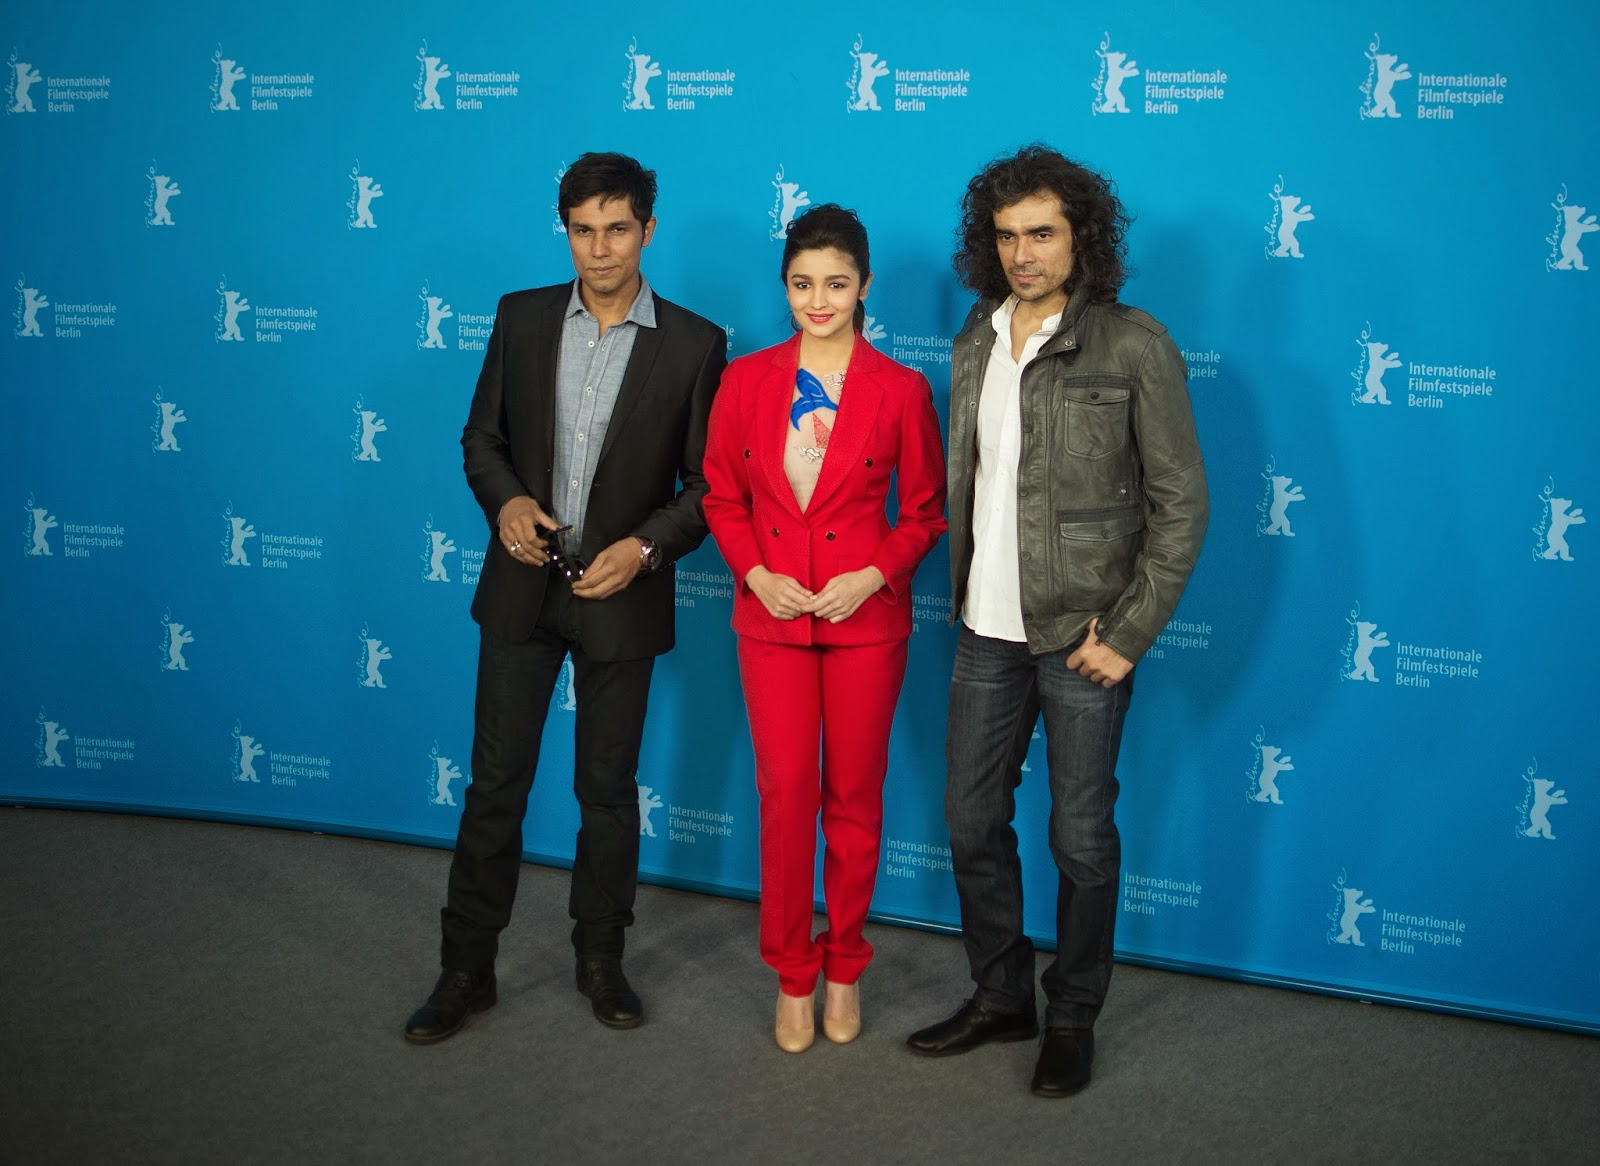 2014 movies, 64th Berlinale Film Festival, Actor, Actress, Alia Bhatt, Berlin, Bollywood, Director, European Film festival, February 21, Festival, Film, Highway, Imtiaz Ali, Movie, Randeep Hooda, Showbiz,